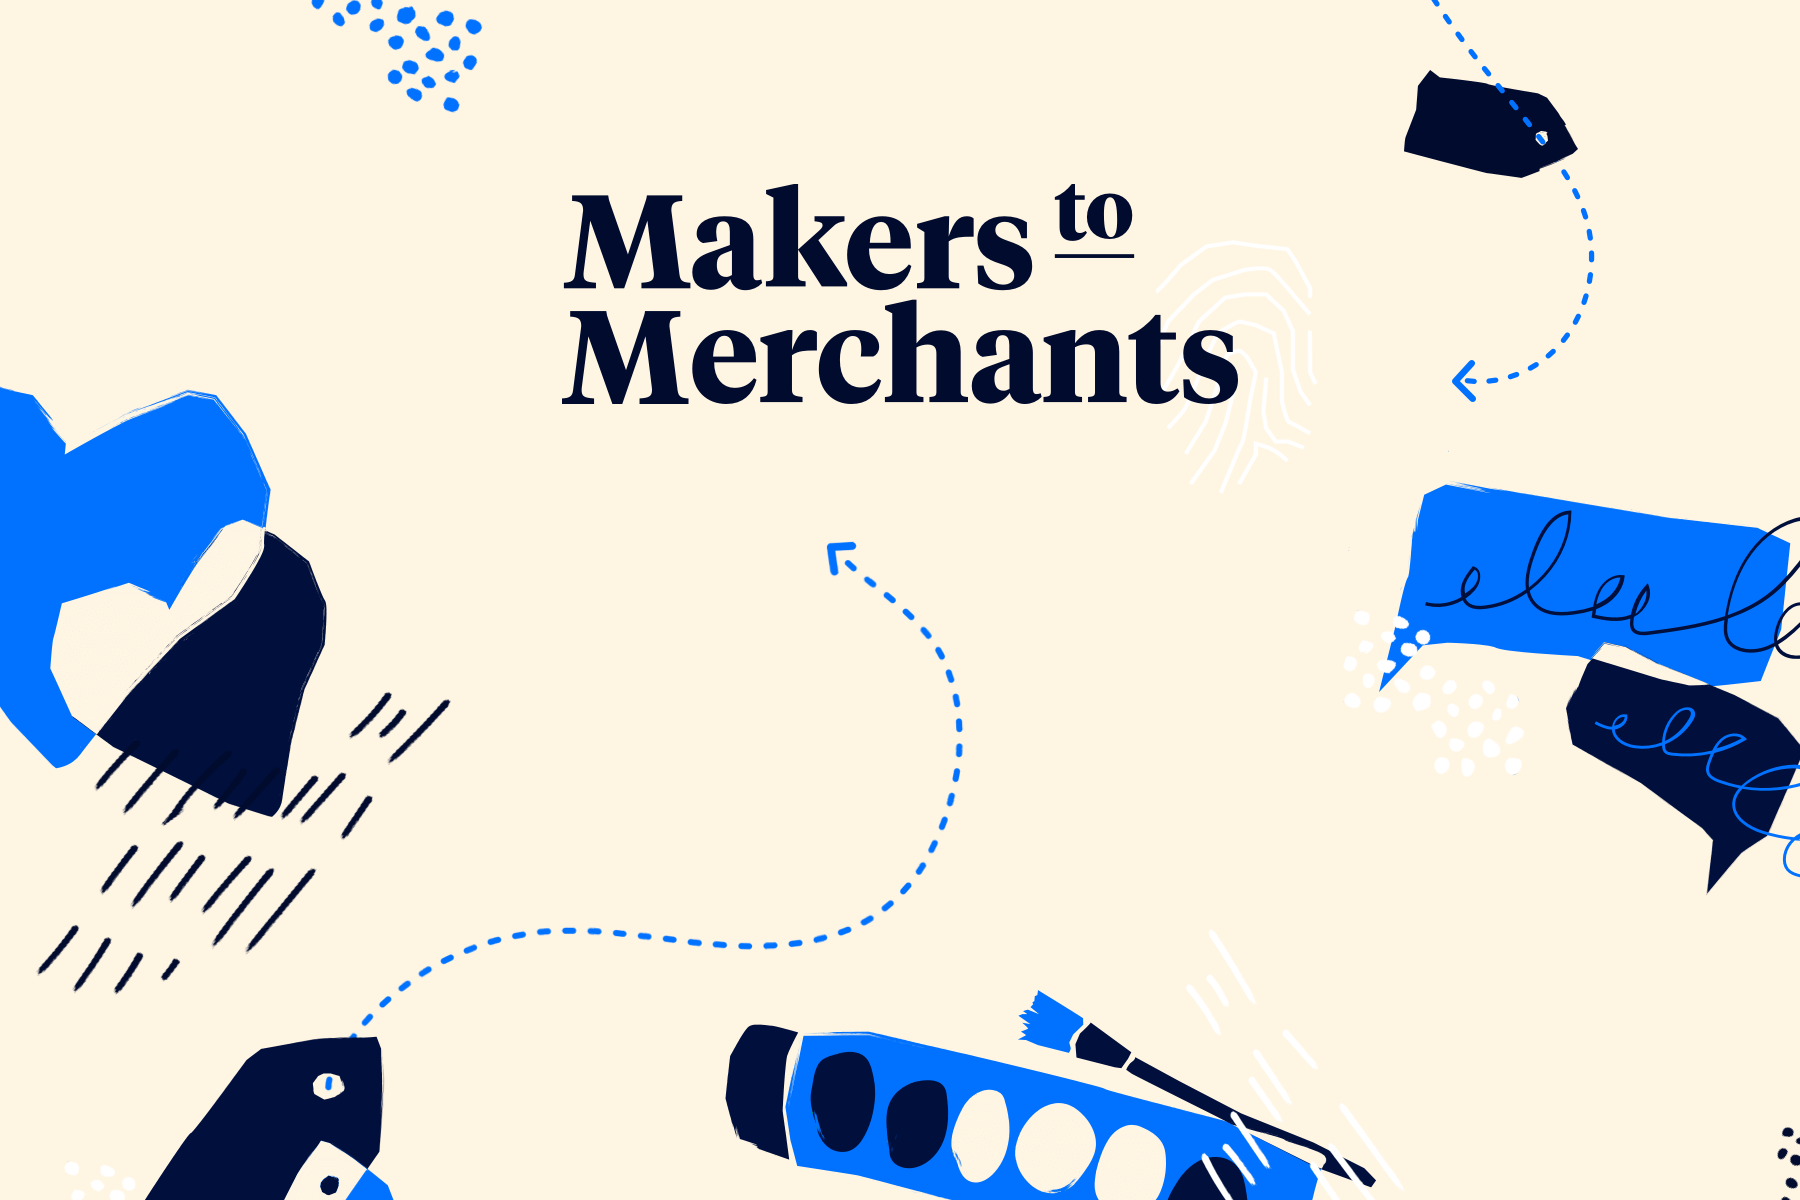 Announcing Makers to Merchants: An Event Series Celebrating Our Community of Makers